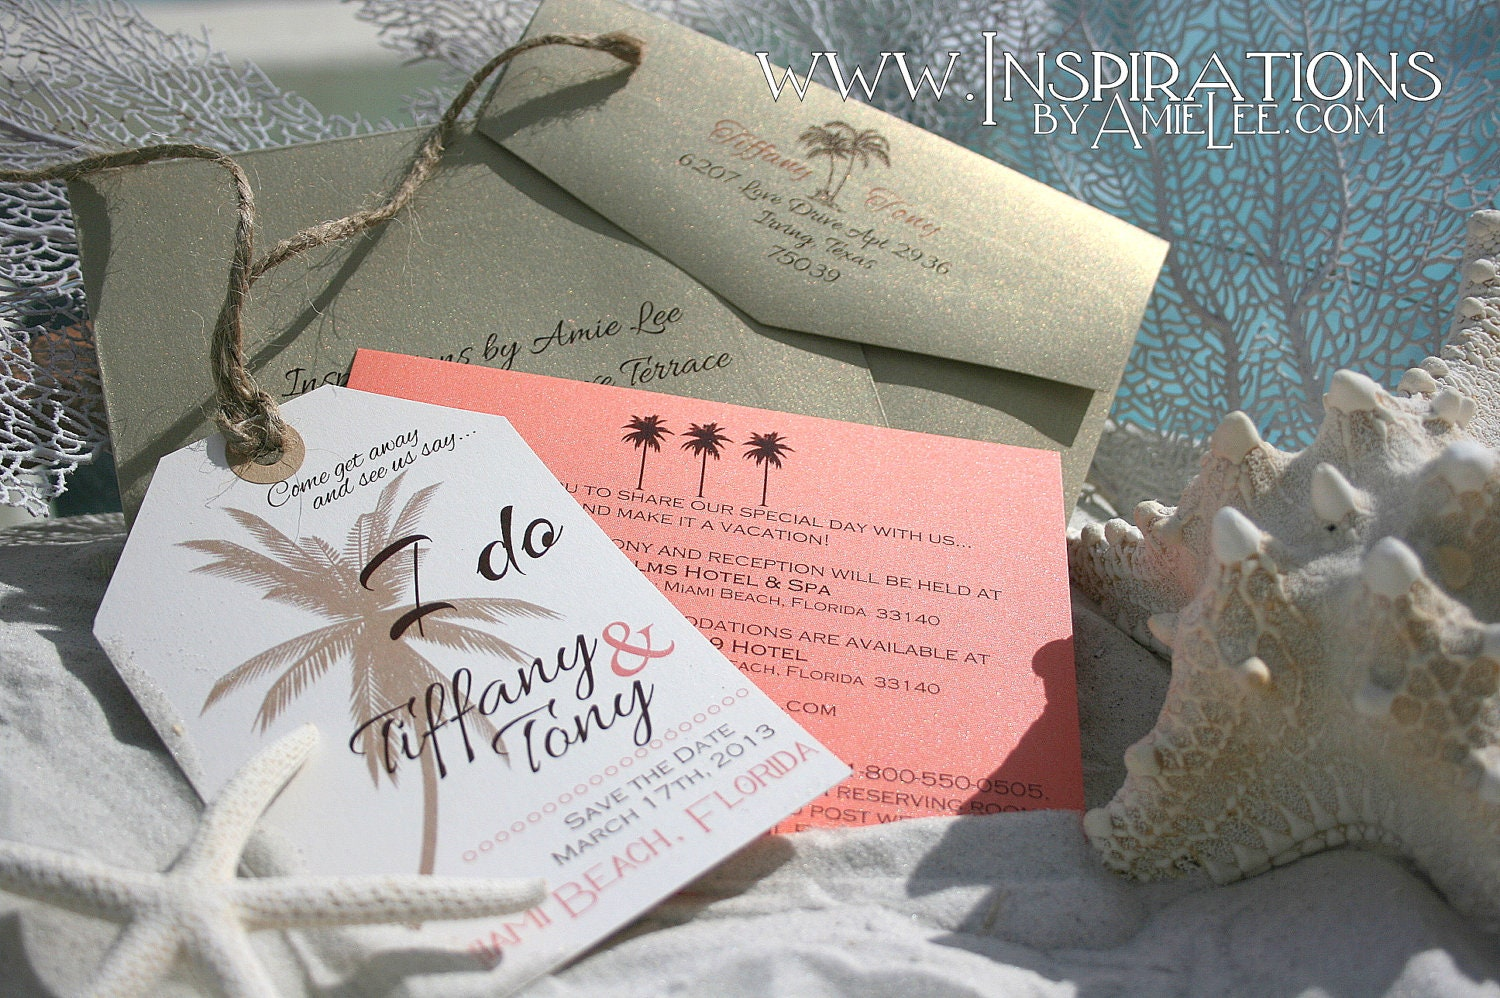 Save the date luggage tags save the date luggage tag   Etsy